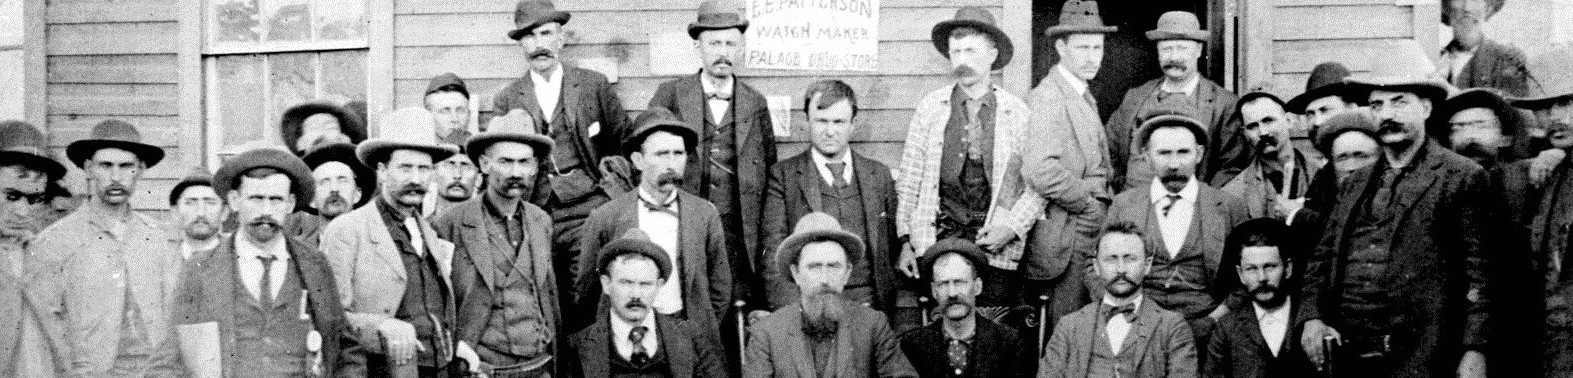 Clerical force and U. S. Deputy Marshals at the U.S. Land Office in Okla. Terr., in 1893